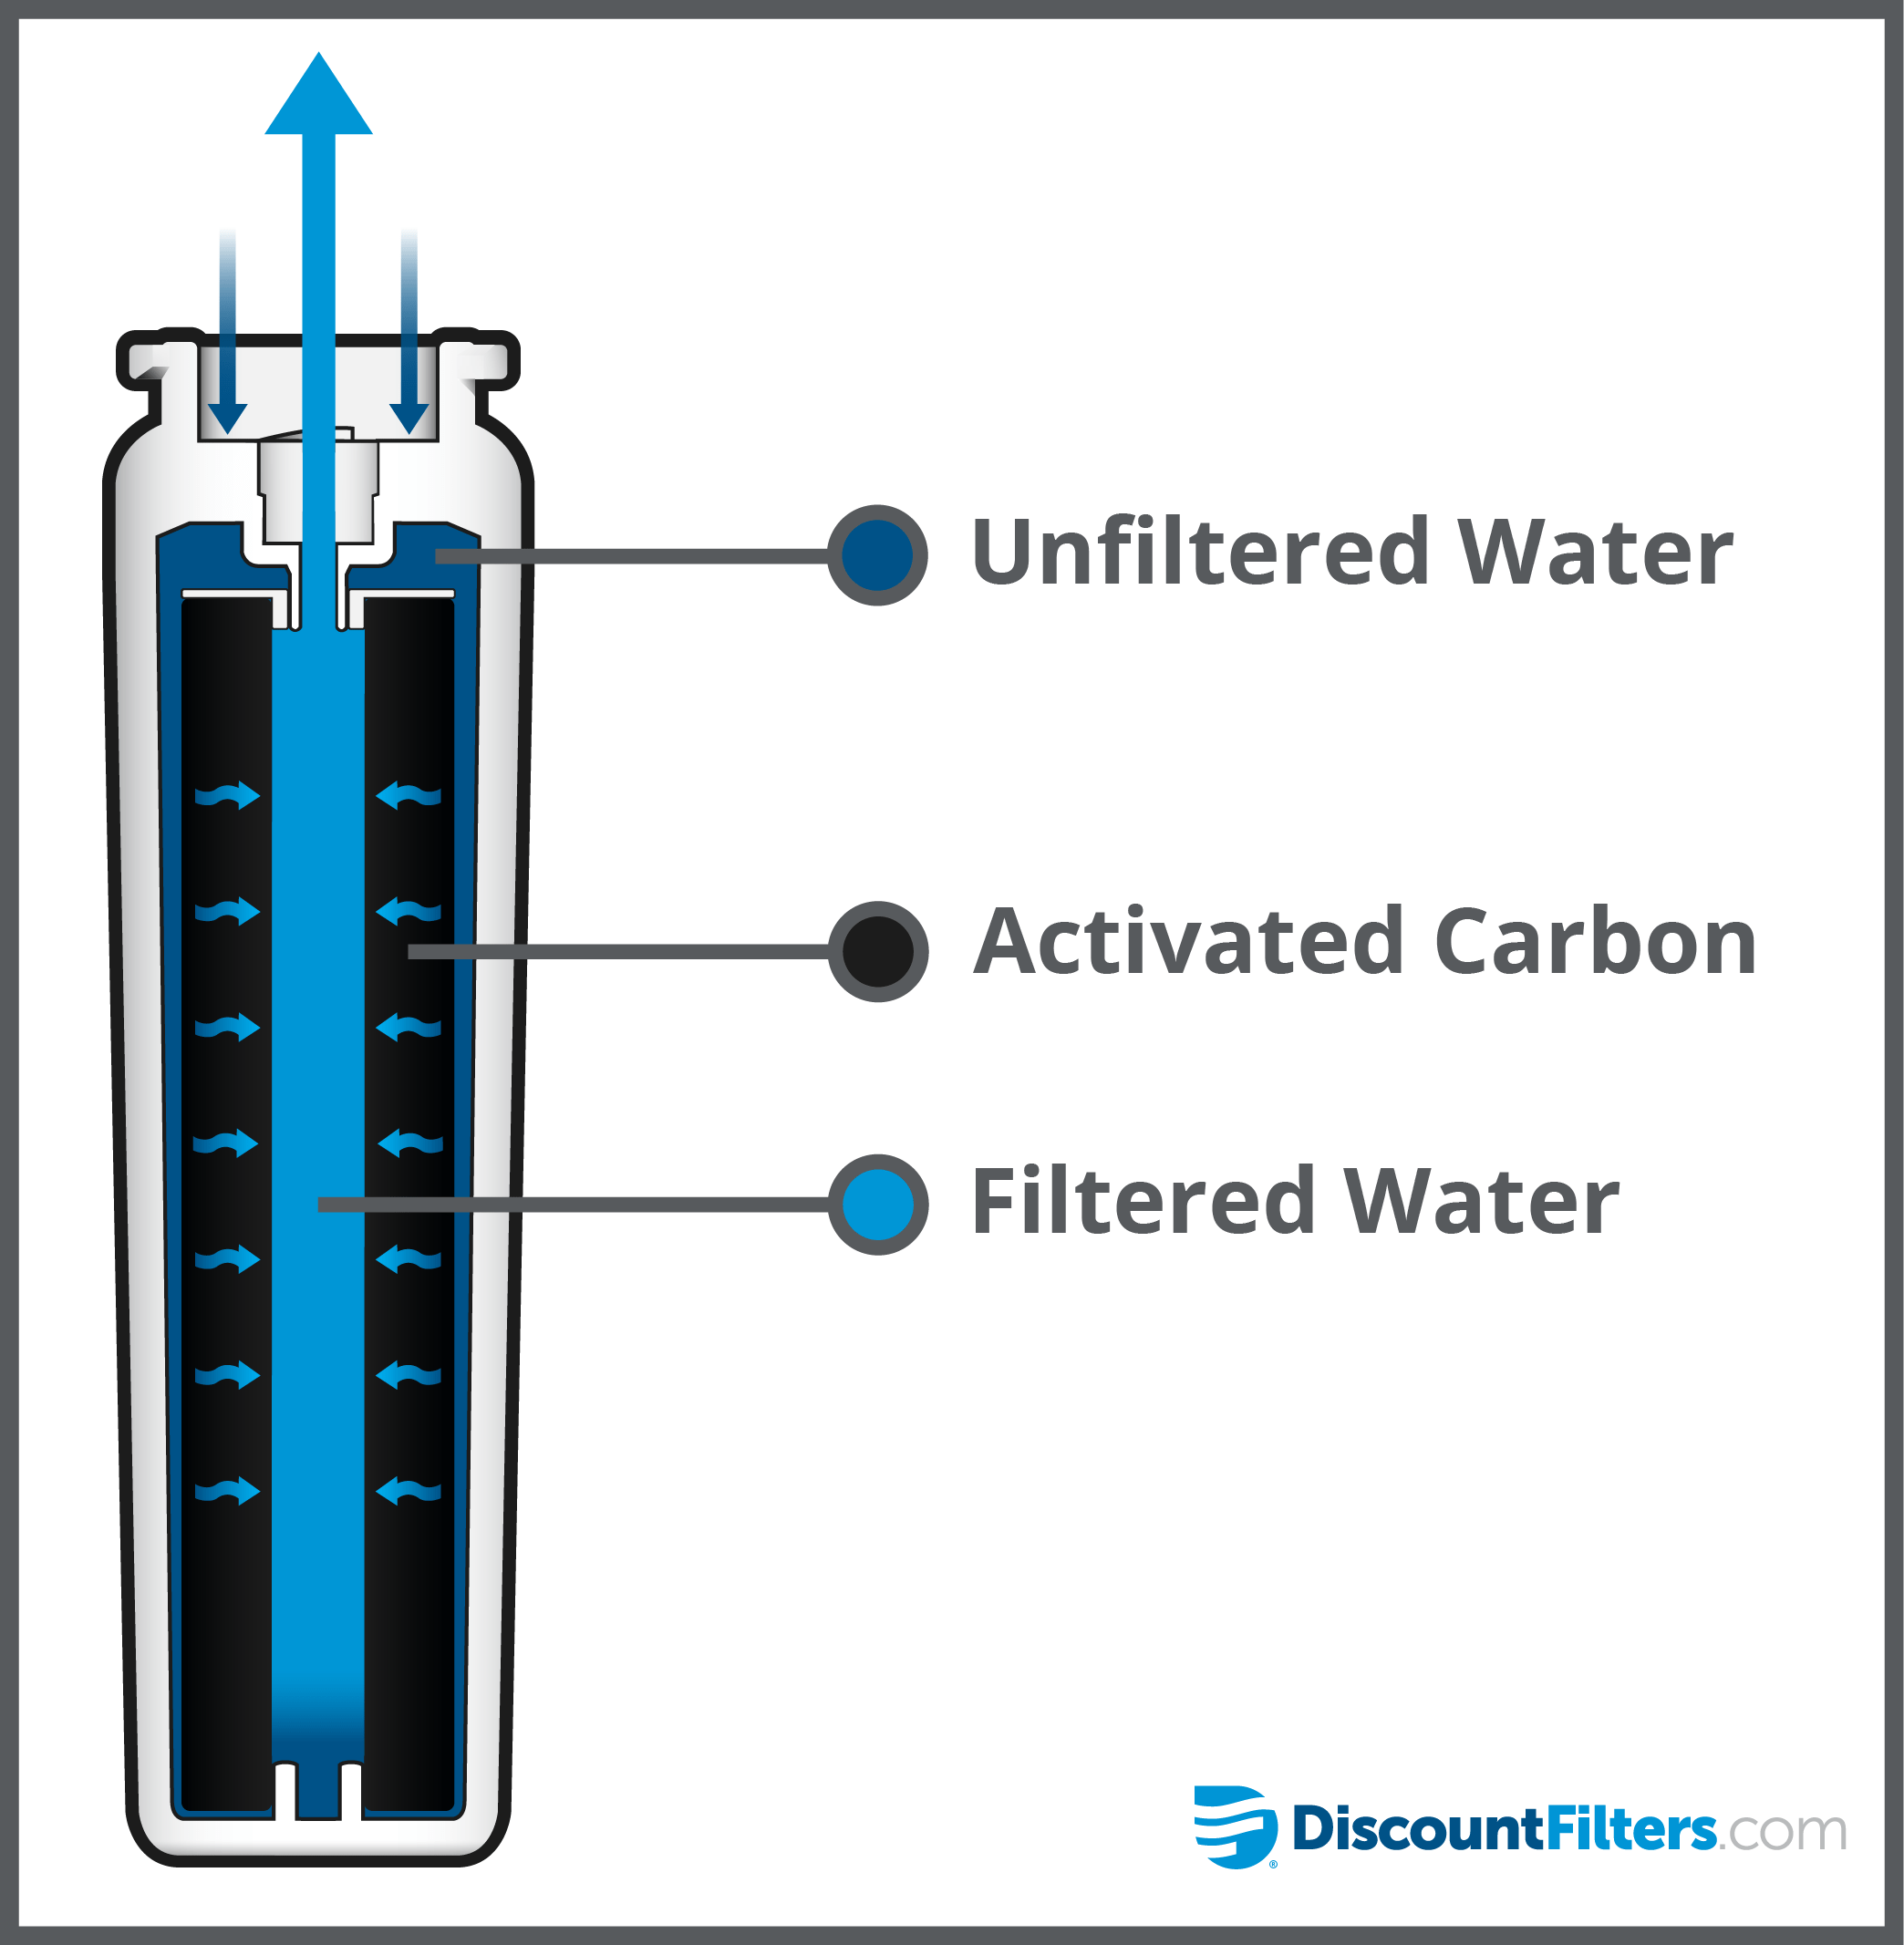 water softeners how they work diagram wiring for a 4 way dimmer switch activated carbon filter free